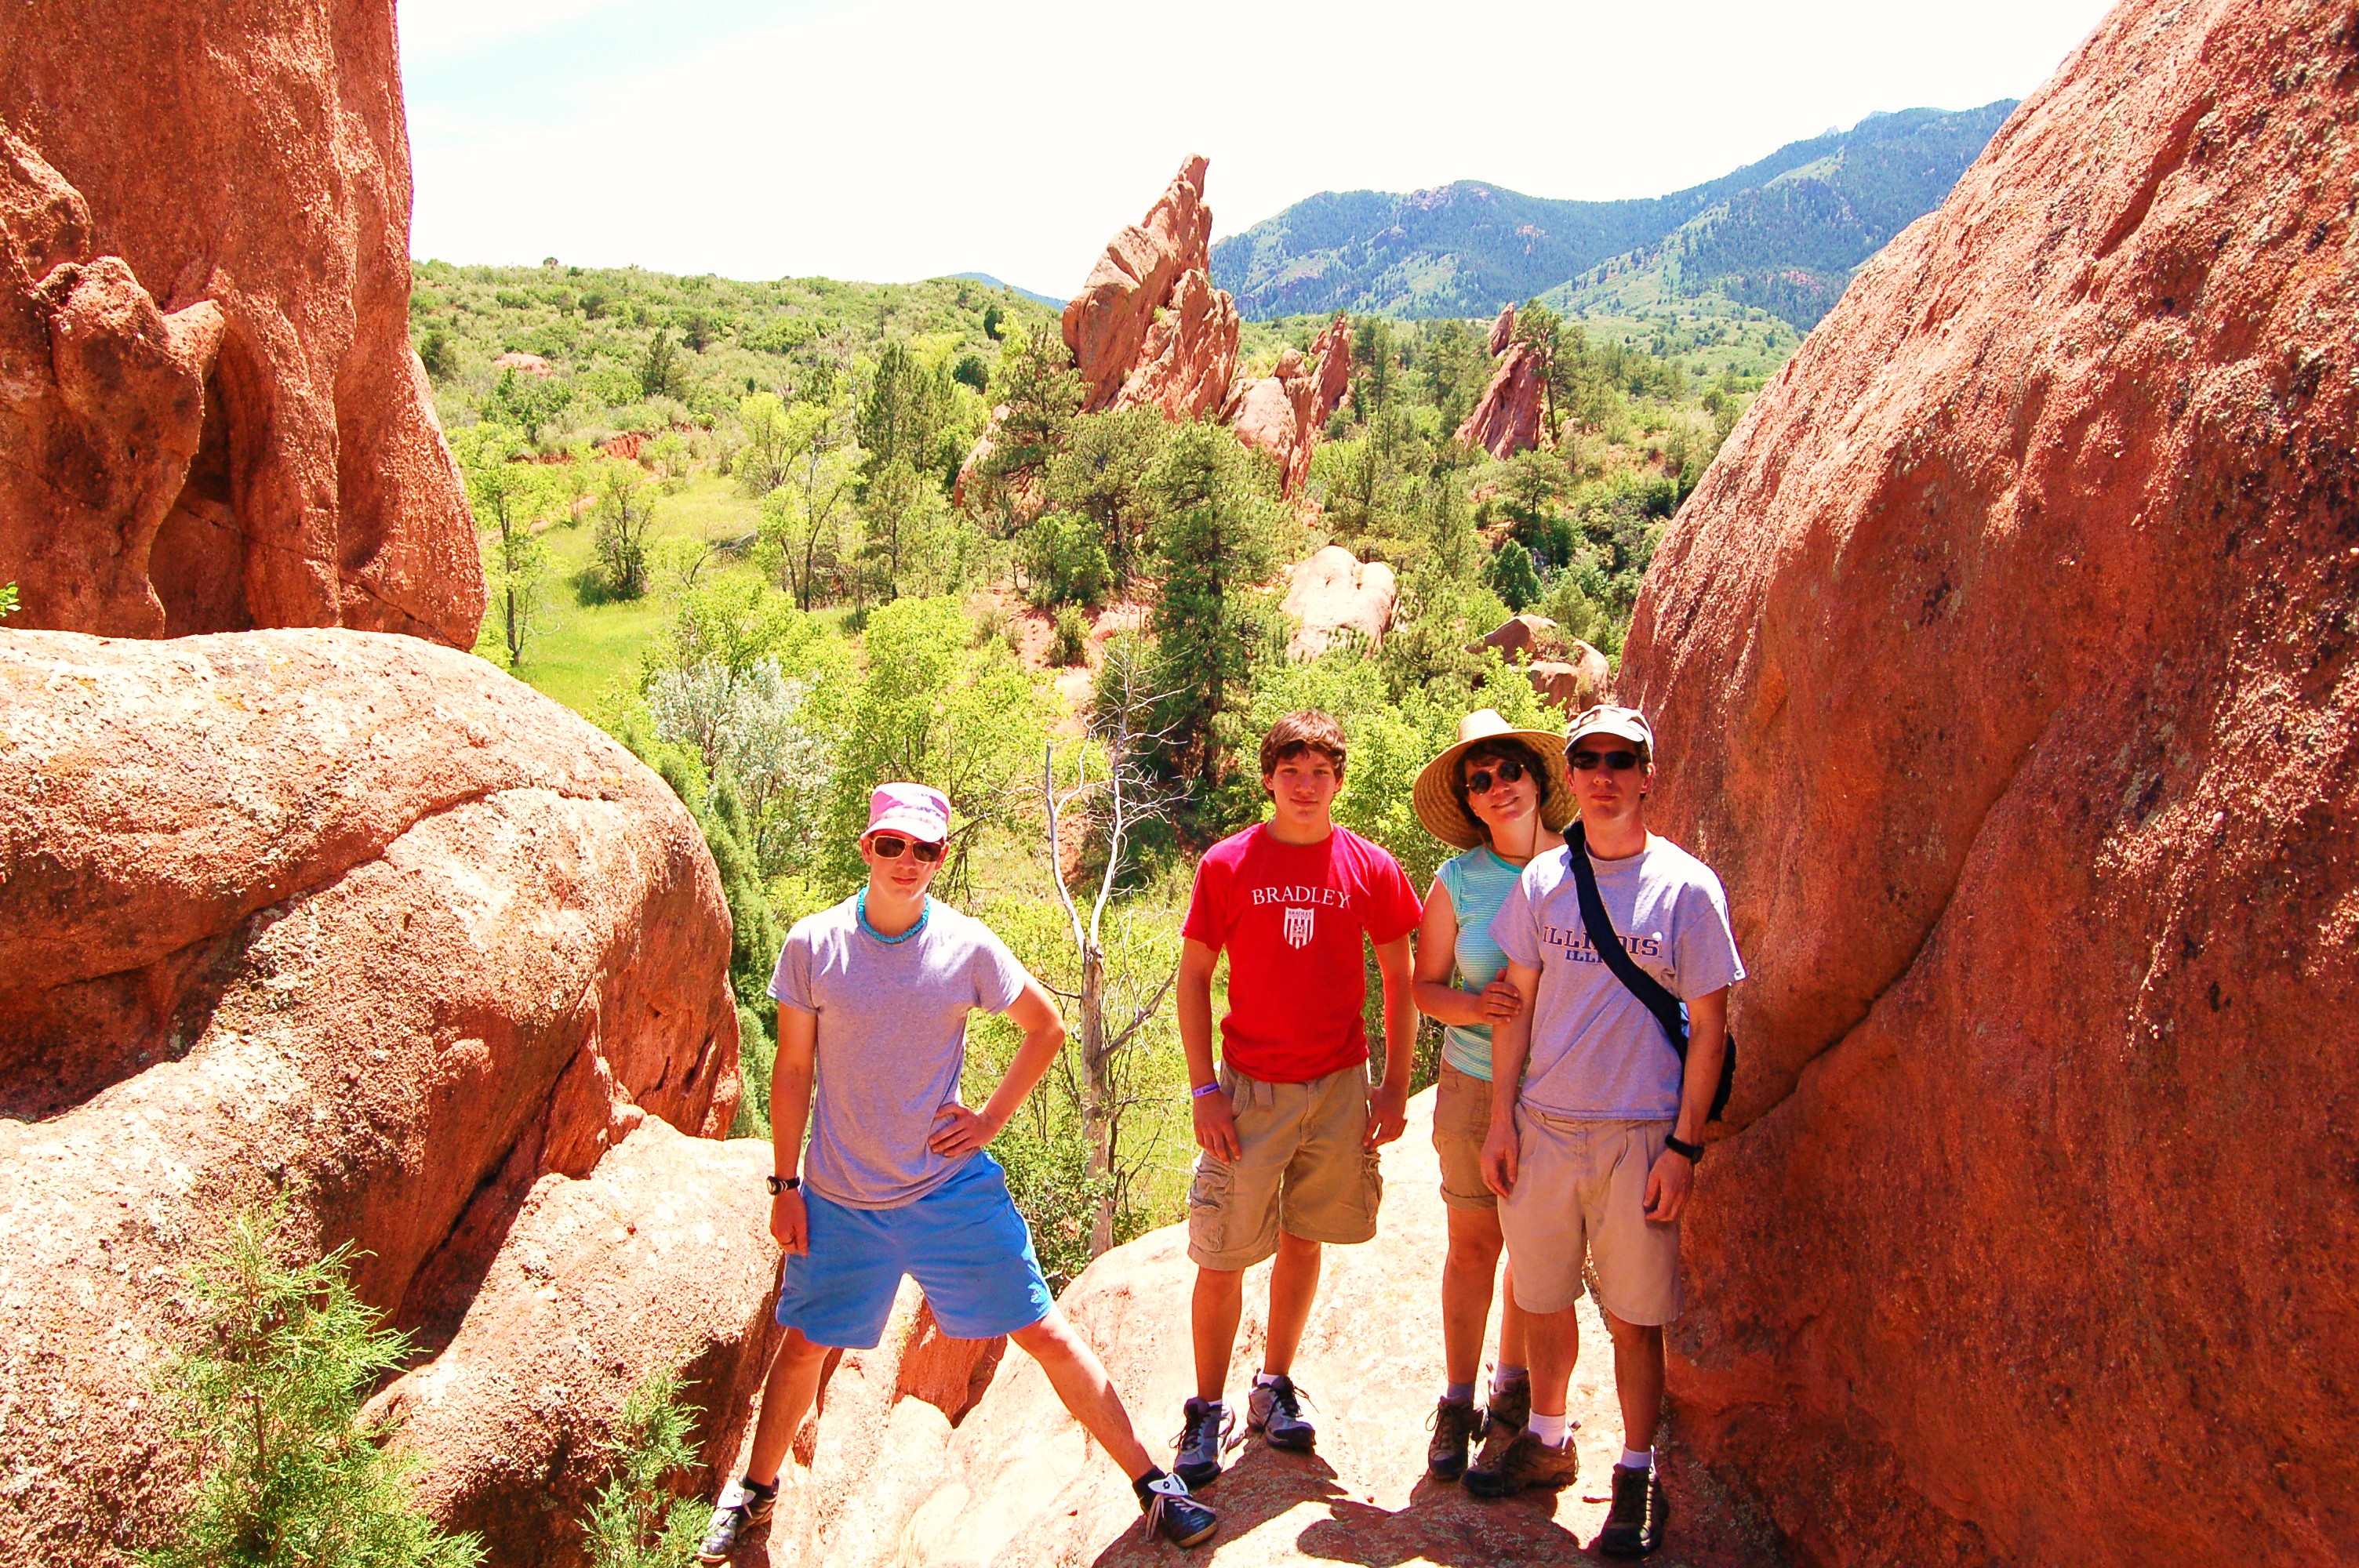 L-R: Taylor, Andy, Gloris, Dave at Red Rock Canyon, Co, 101 degrees!